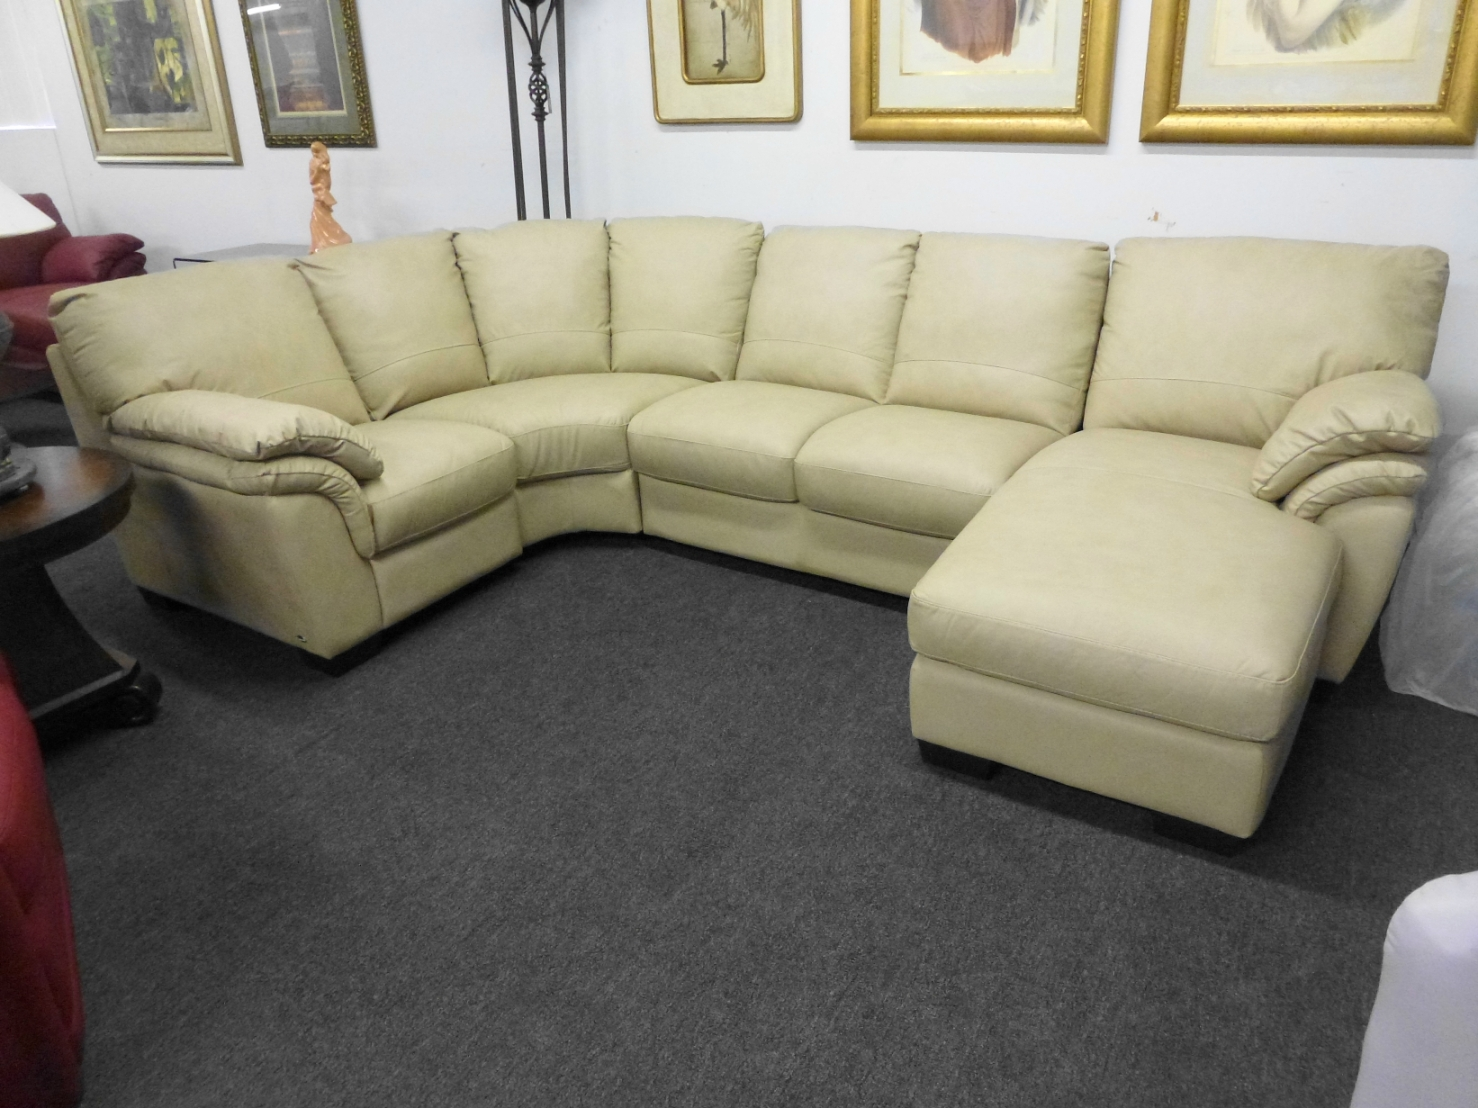 Natuzzi Leather Sofas Sectionals By Interior Concepts Furniture July 2012